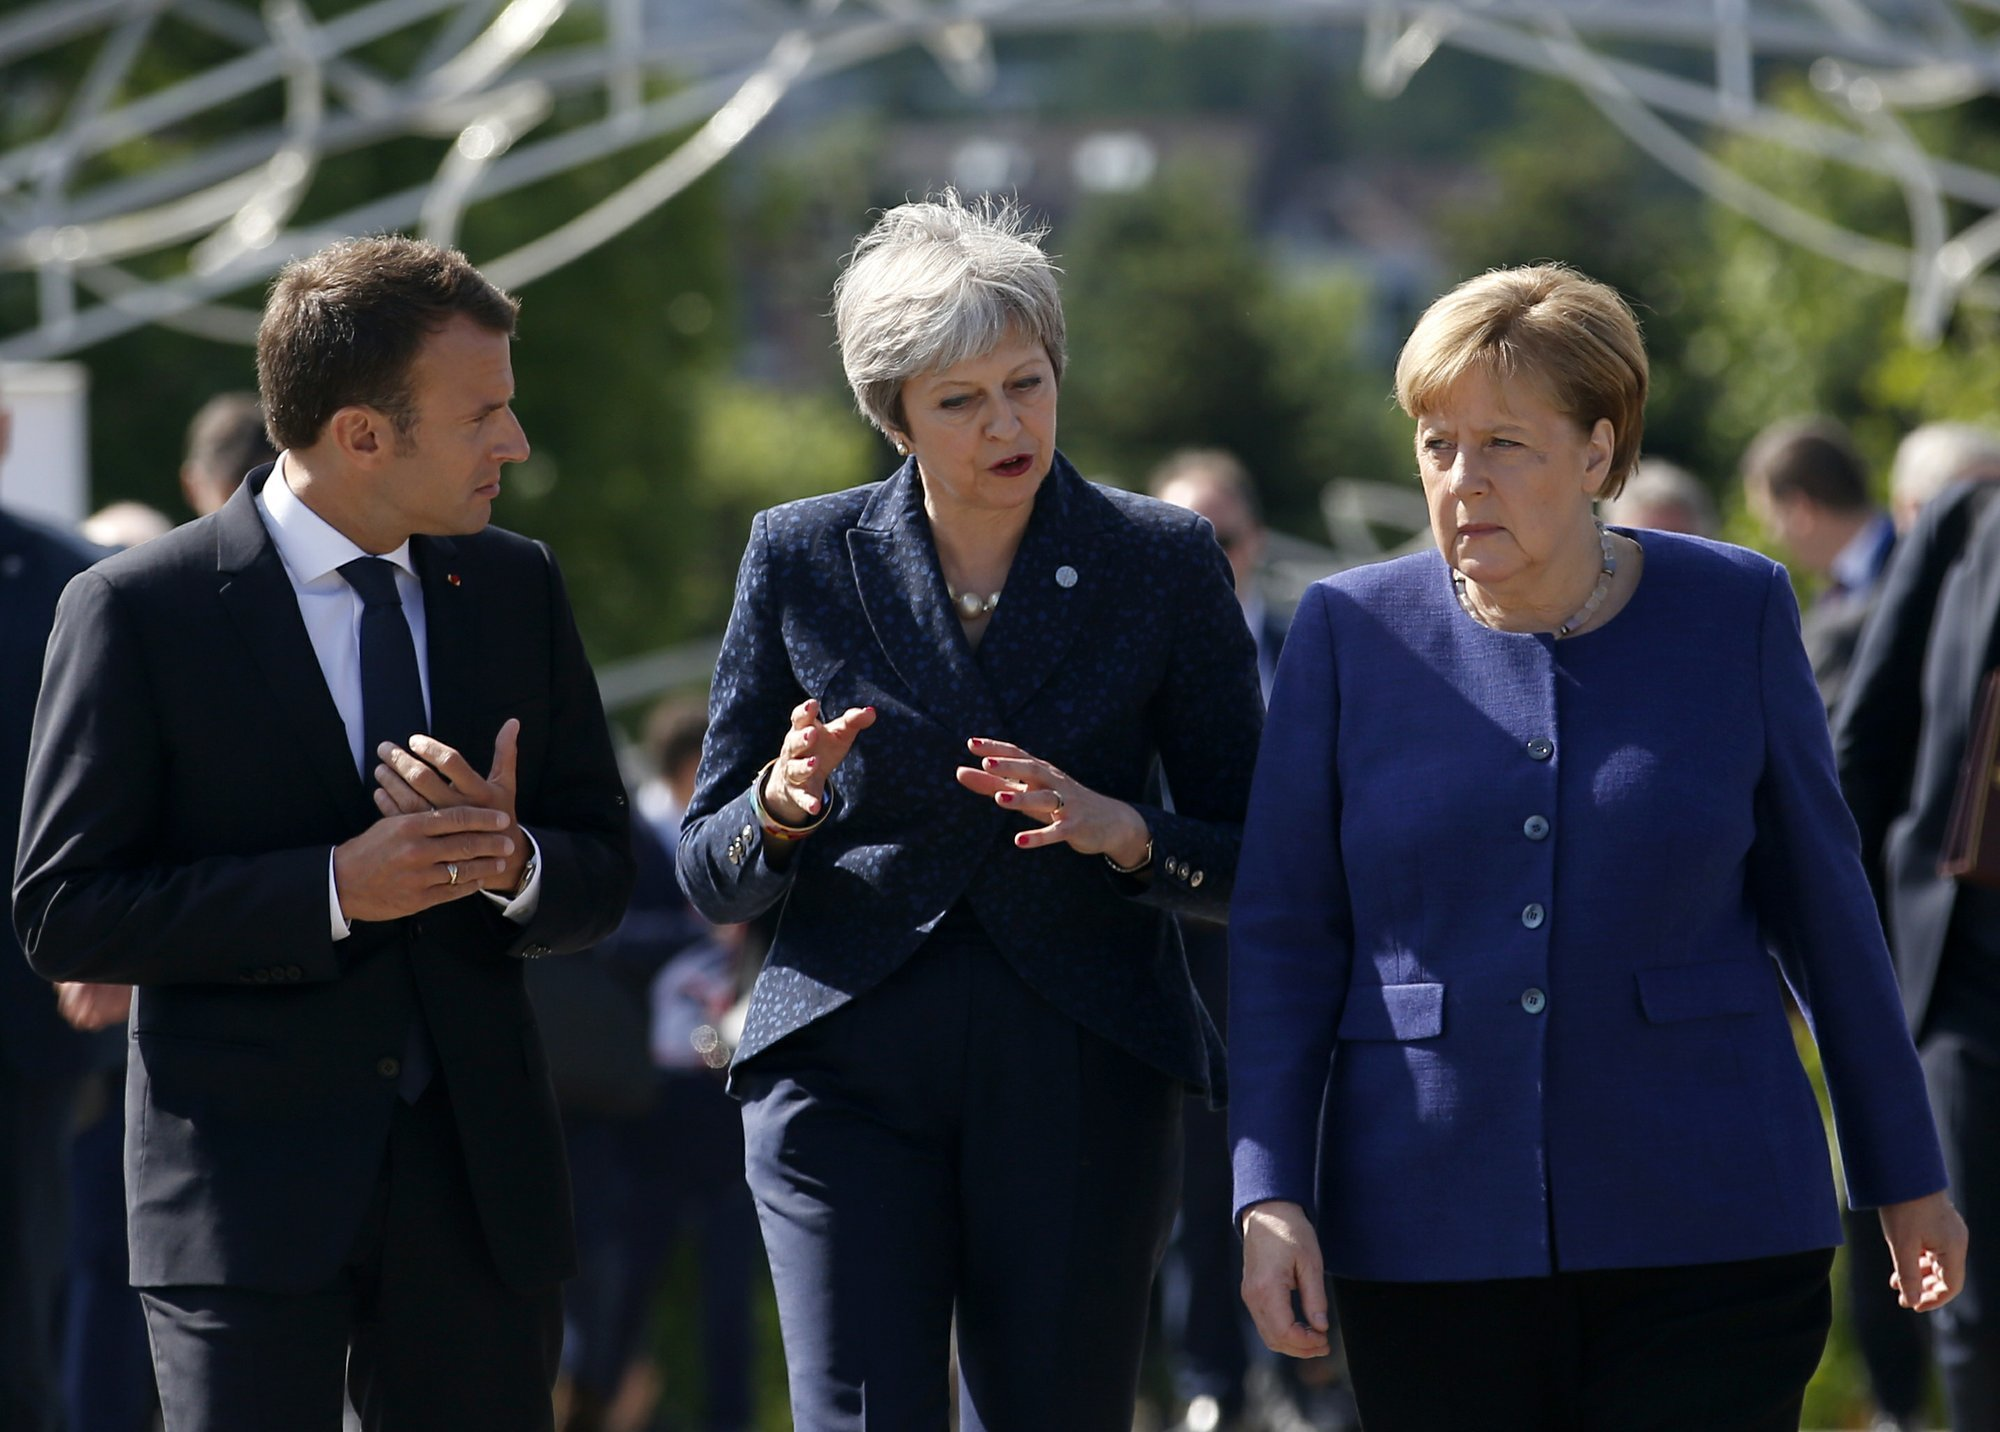 In this May 17, 2018 file photo, German Chancellor Angela Merkel, right, speaks with French President Emmanuel Macron, left, and British Prime Minister Theresa May after meeting at a hotel on the sidelines of the EU-Western Balkans summit in Sofia, Bulgaria. — AP